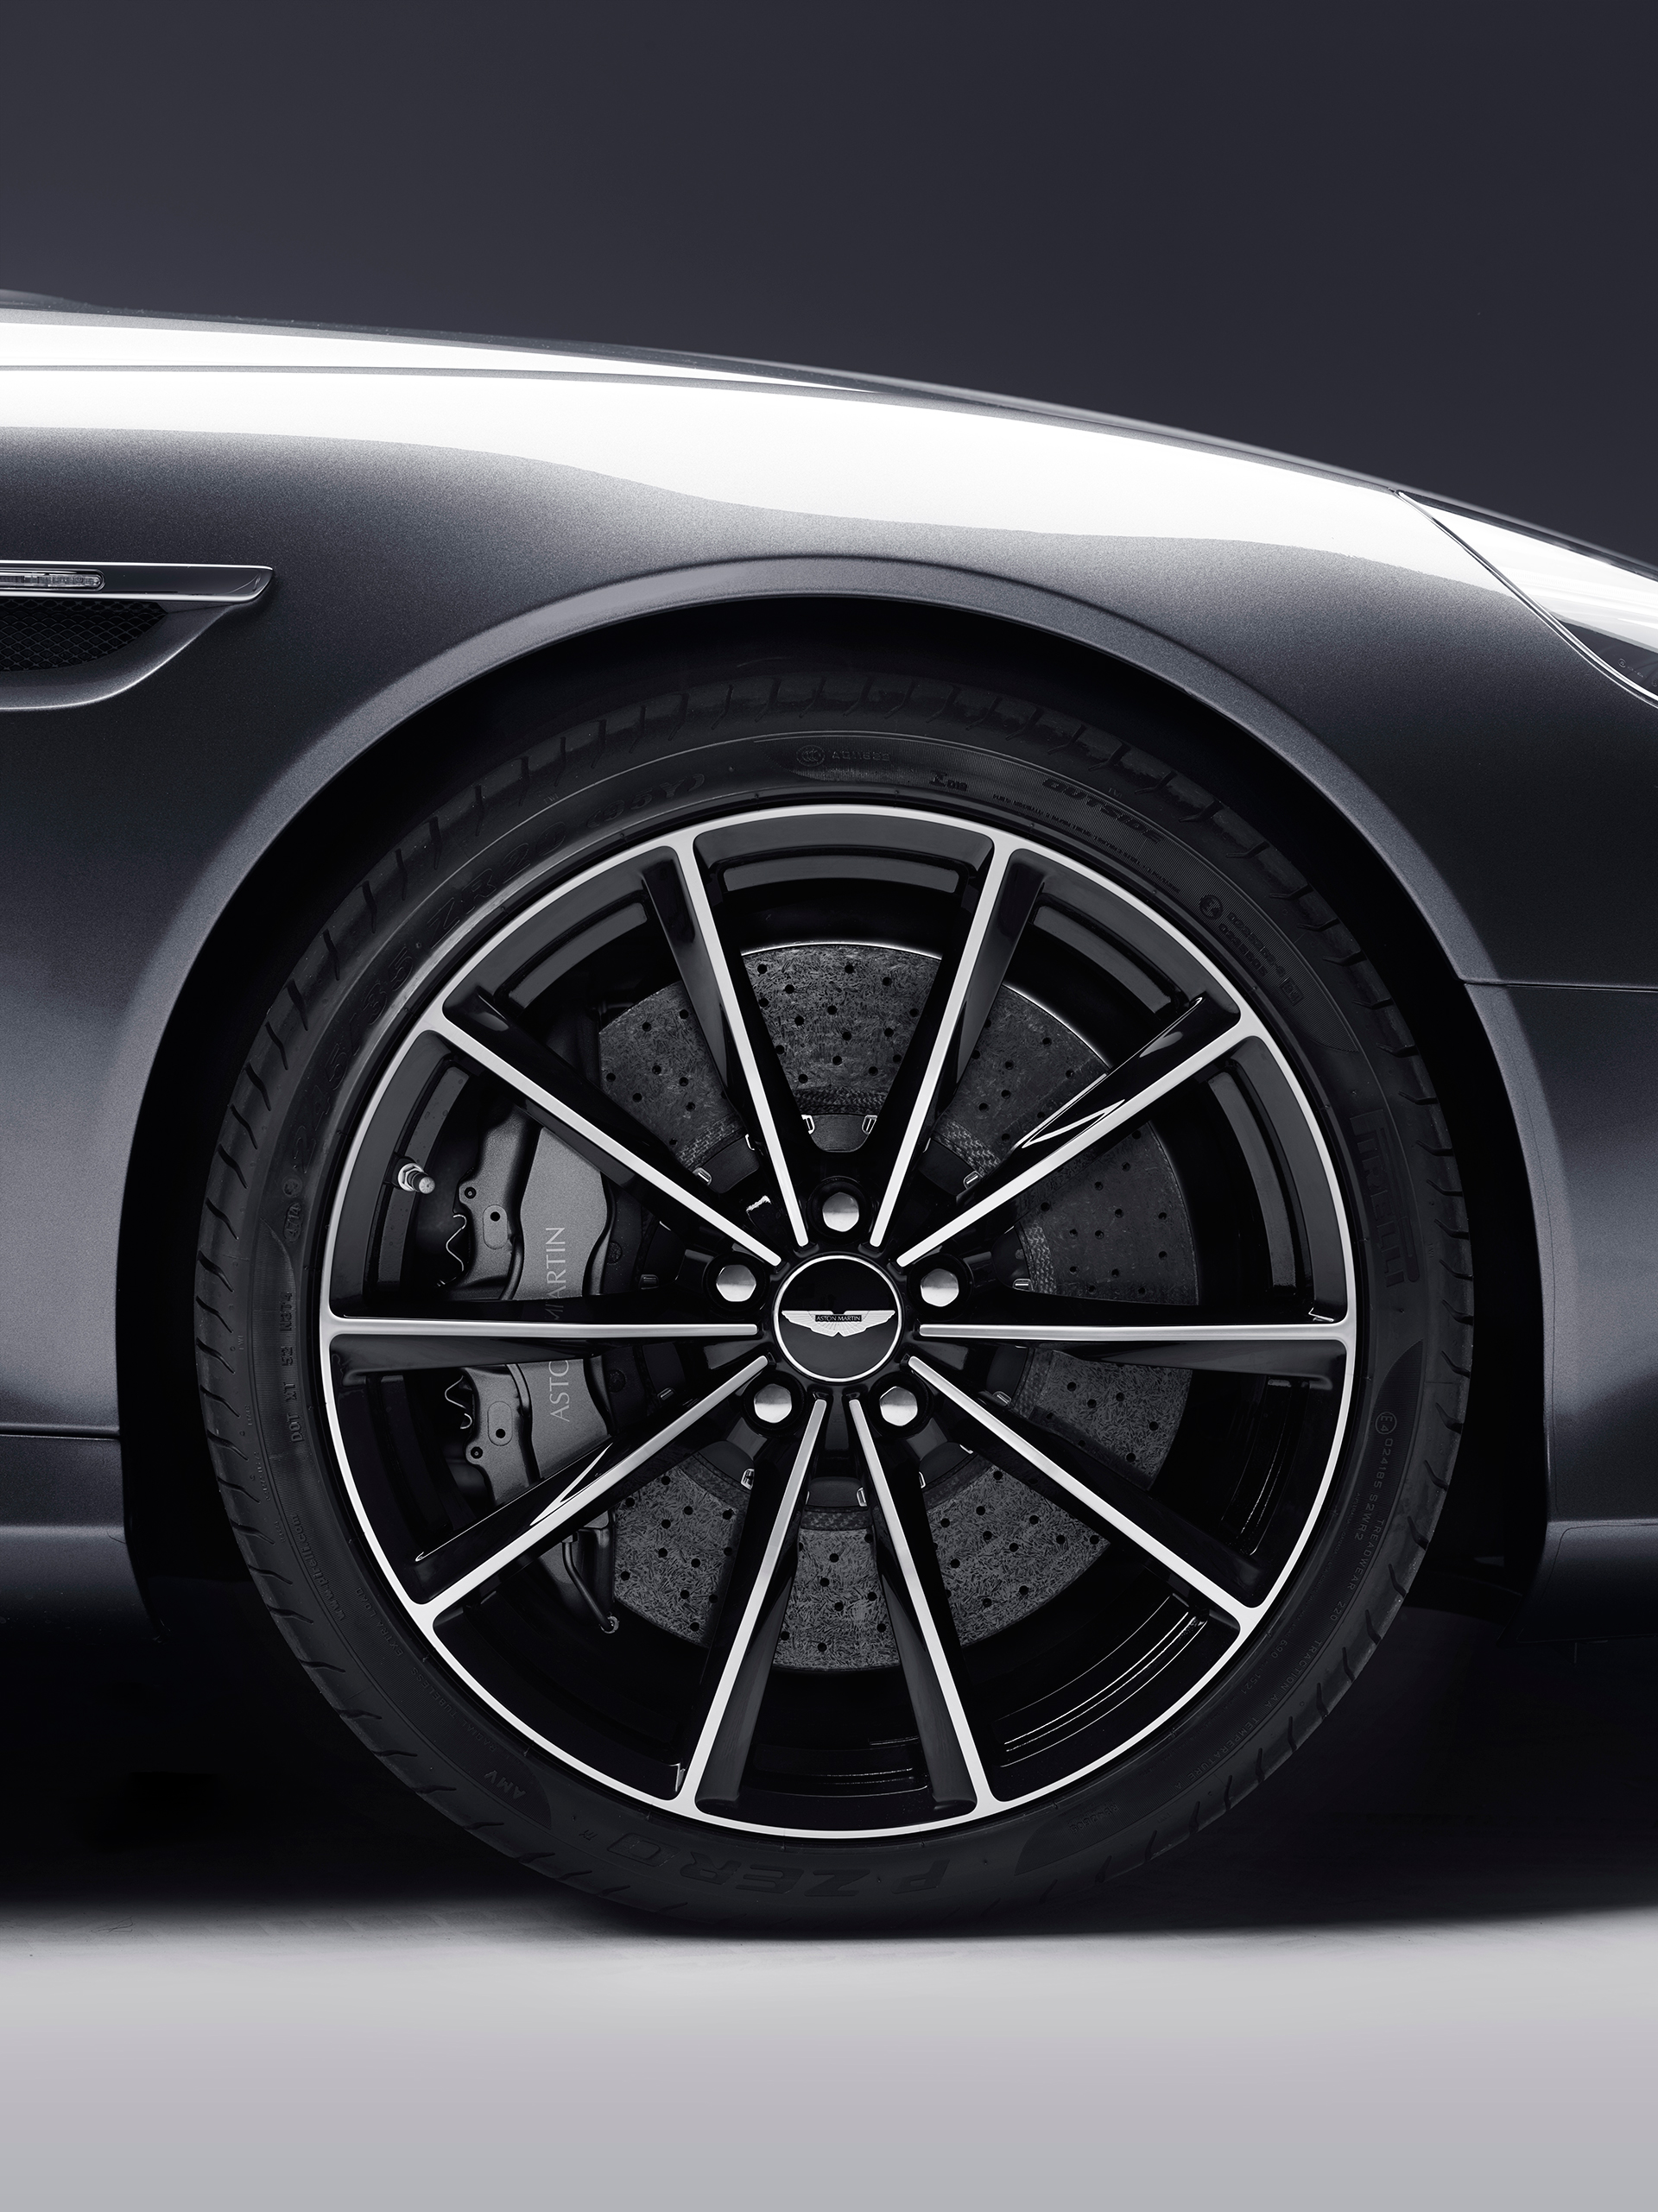 Aston Martin DB9 GT - 2015 - jante / wheel